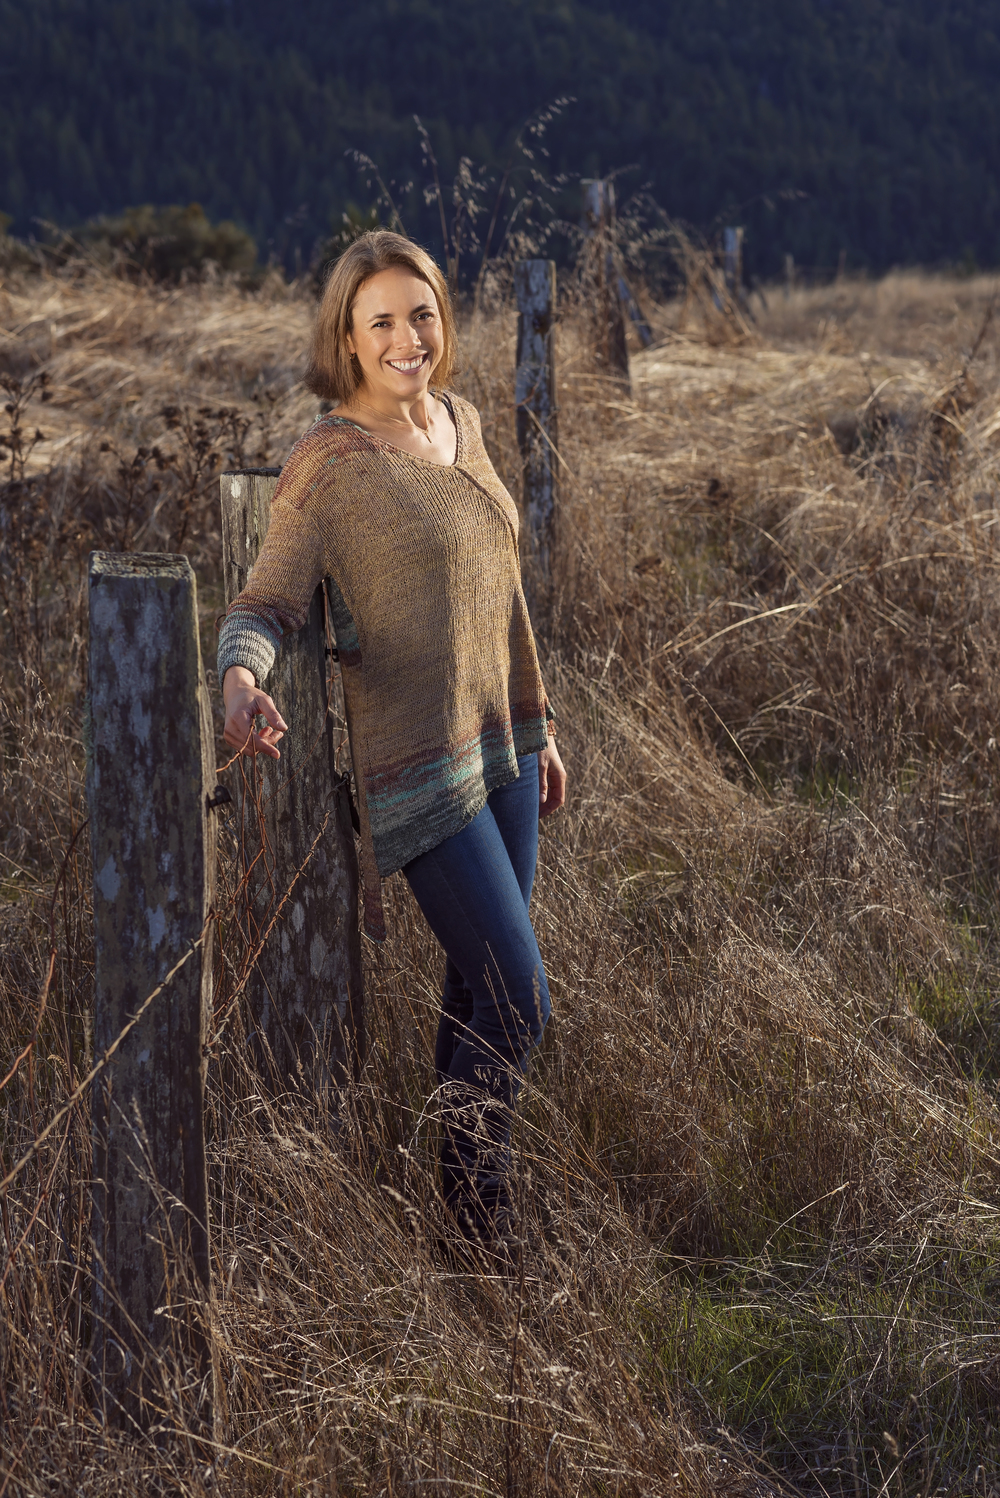 Model-Fence-Country-Field-Golden-Redway-California-Grass-Smiles-Happy-Love-Radiant